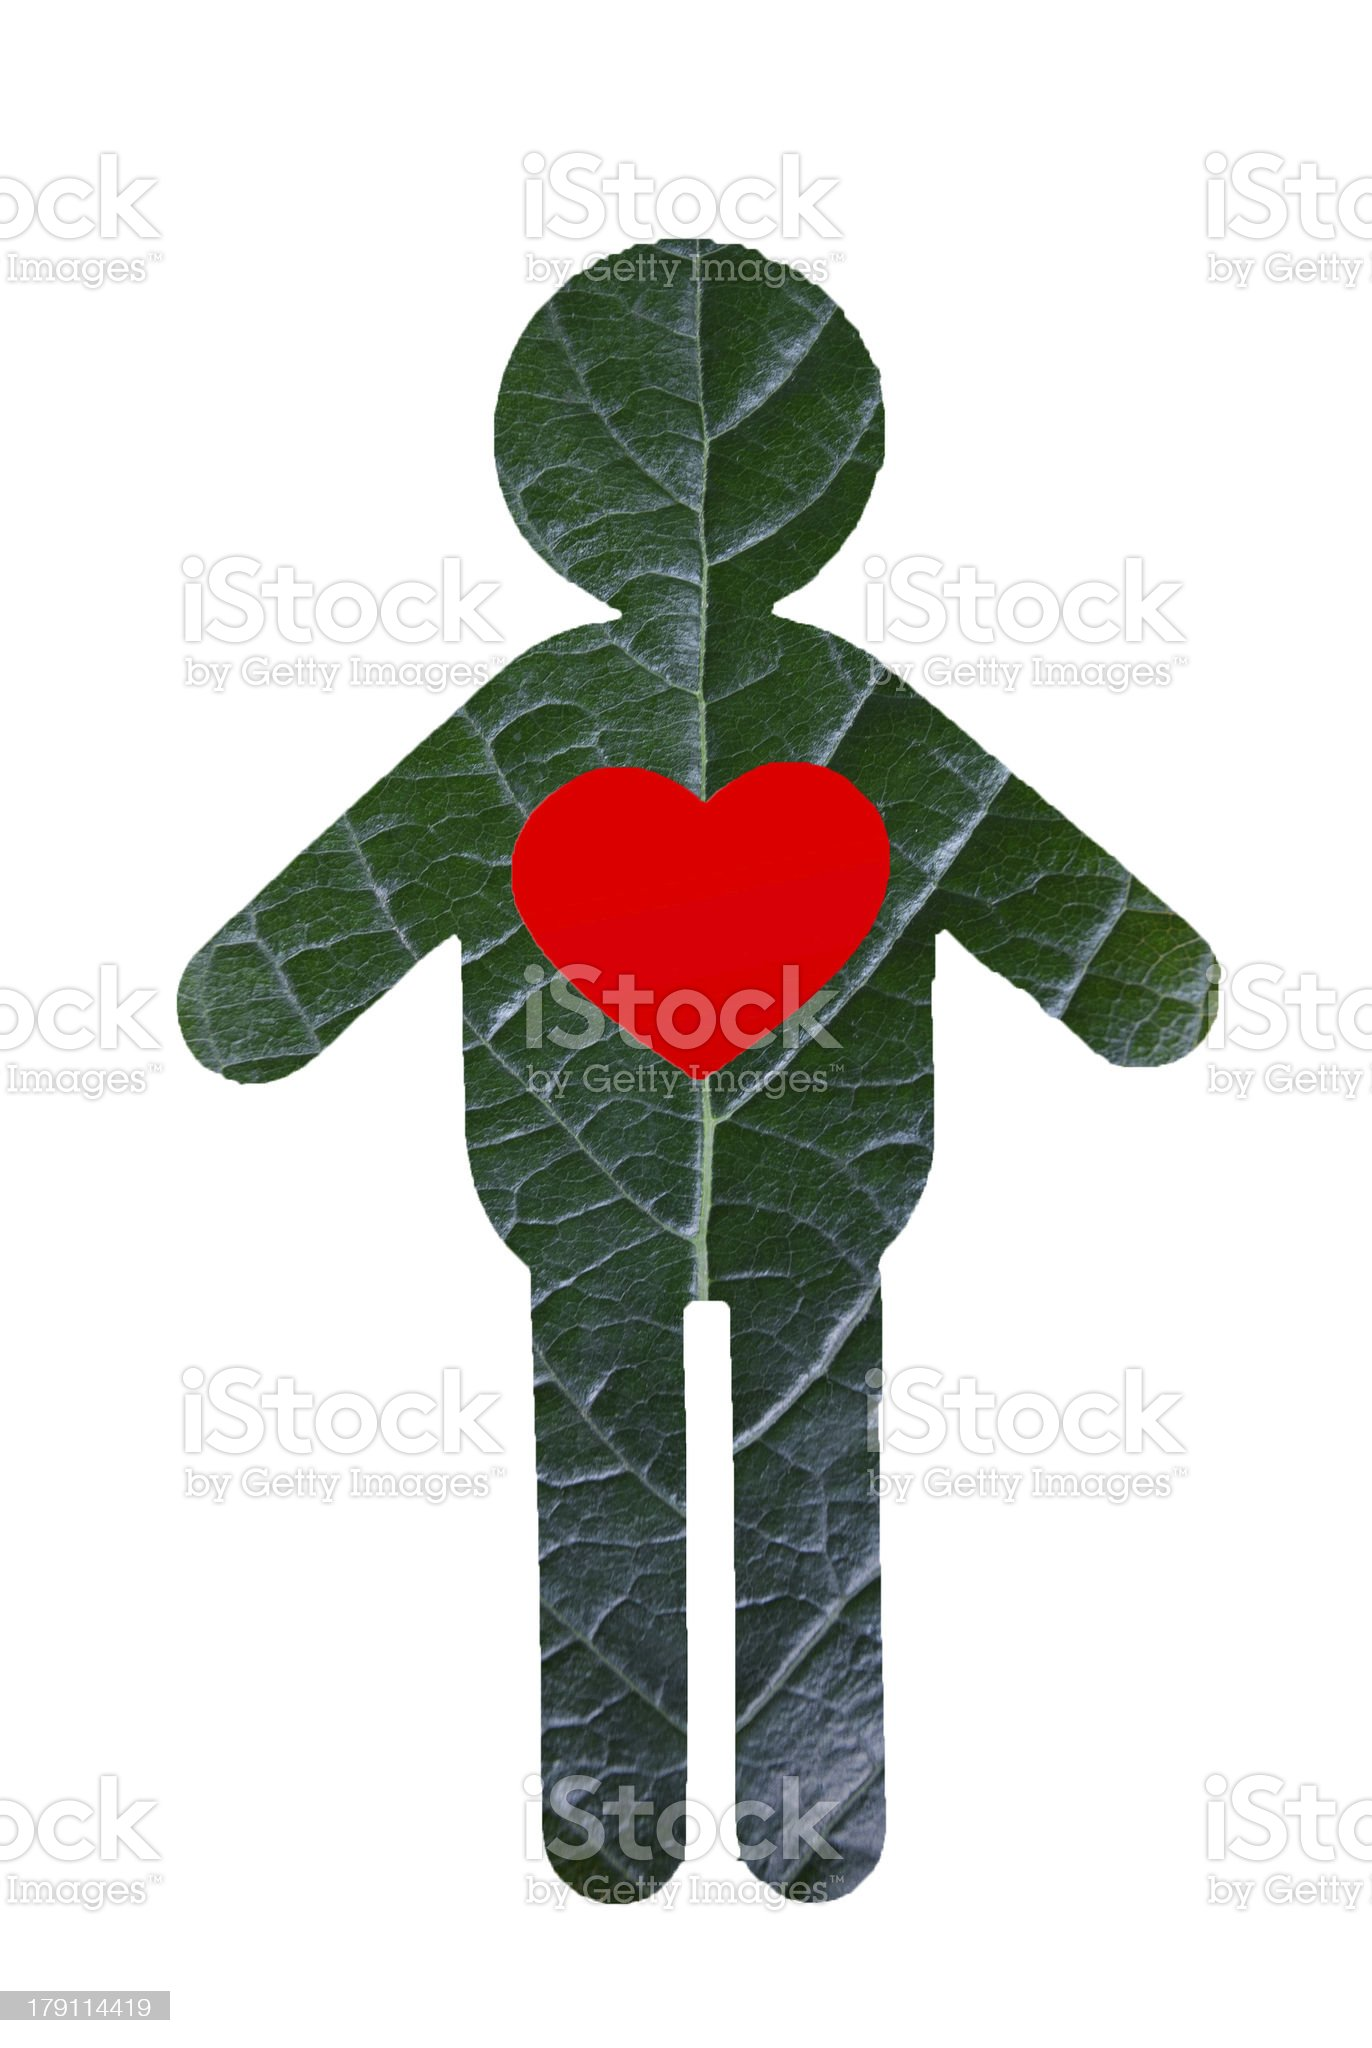 Green Man with red heart royalty-free stock photo